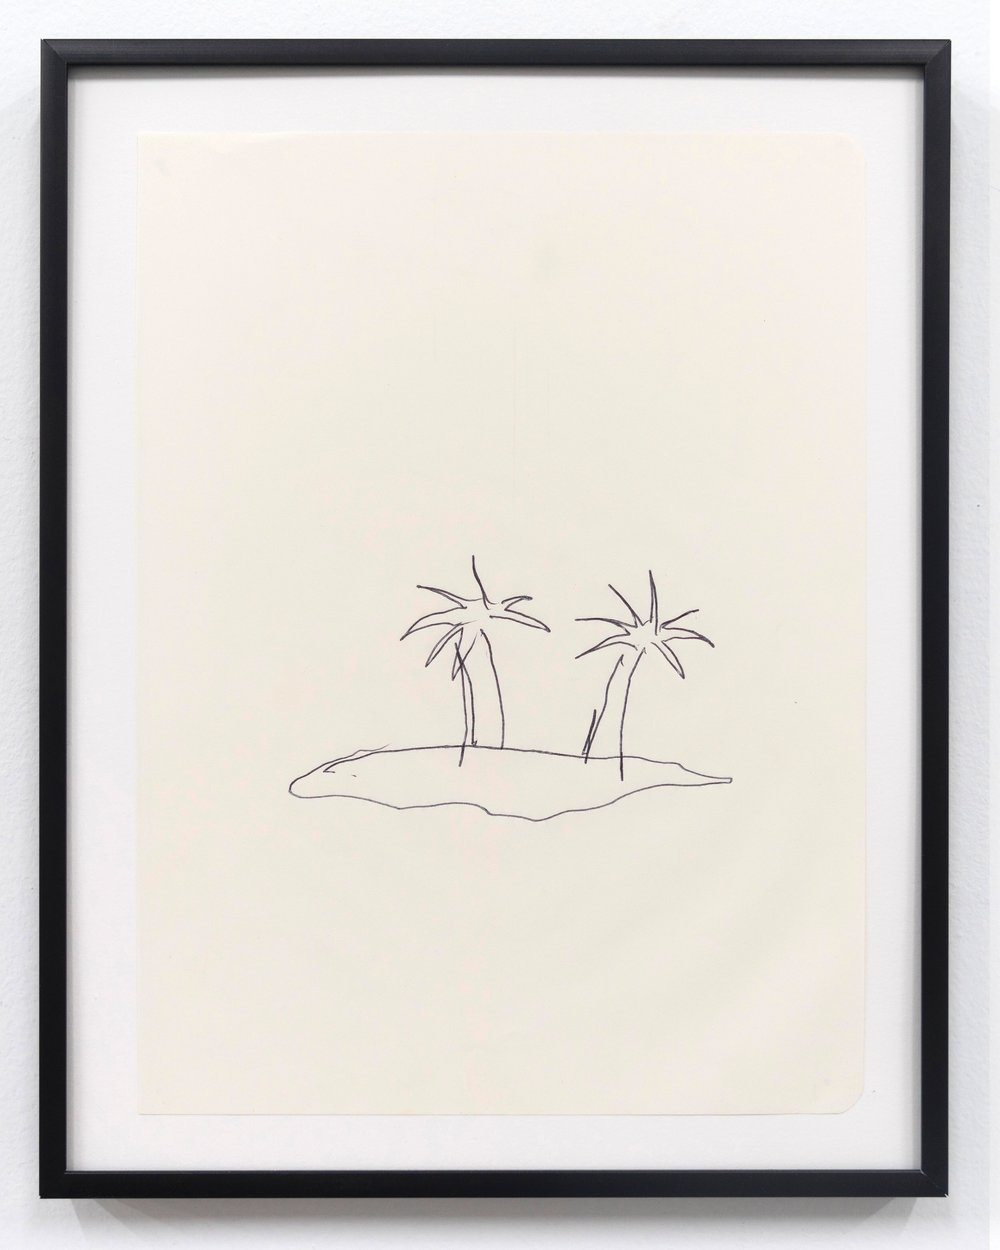 Emilie Gossiaux    The Beach , 2018 Ink on newsprint   11 1/2 x 9 1/8 inches 29.2 x 23.2 cm